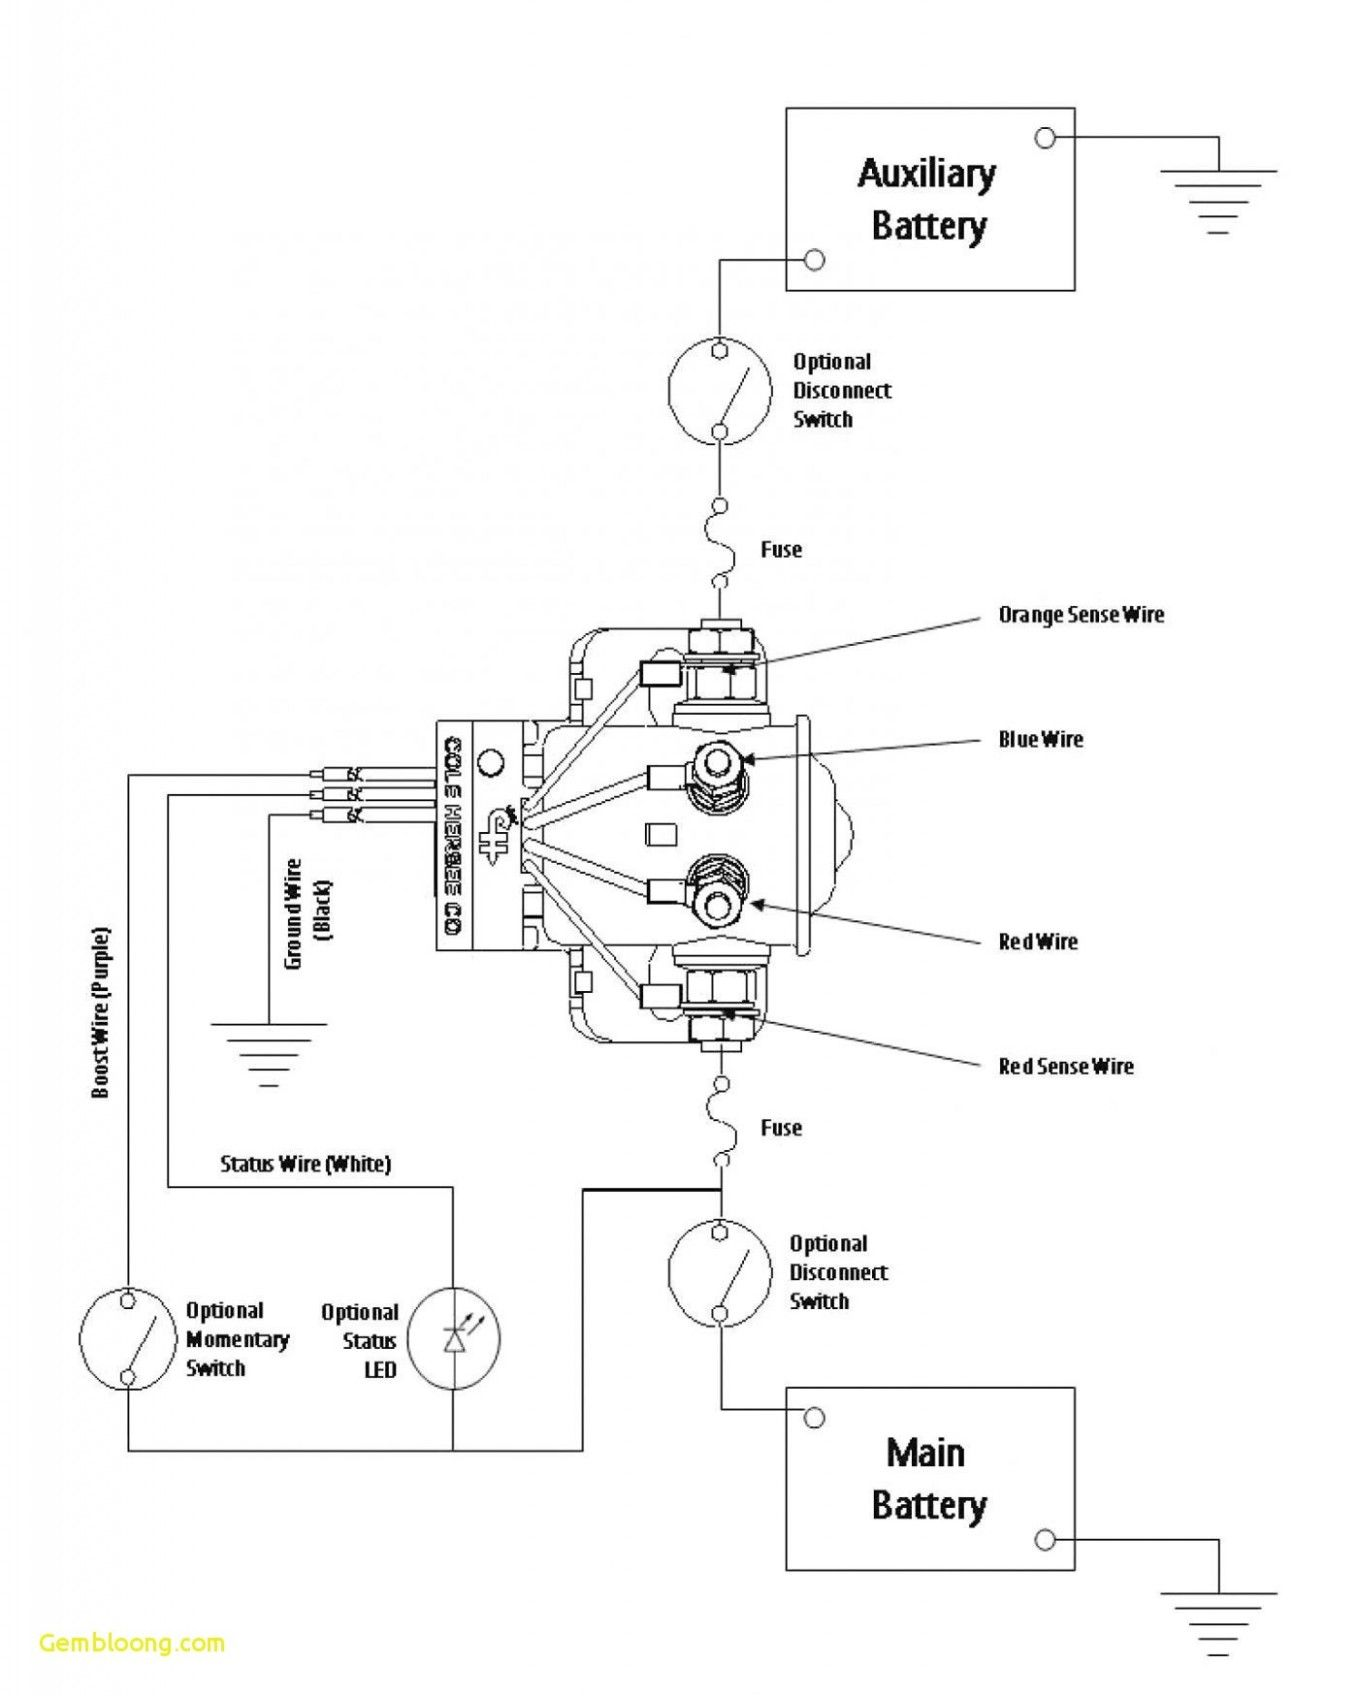 Engine Diagram Bmw M6 Yamaha in 2020 | Electrical wiring diagram,  Alternator, Car stereo systemsPinterest